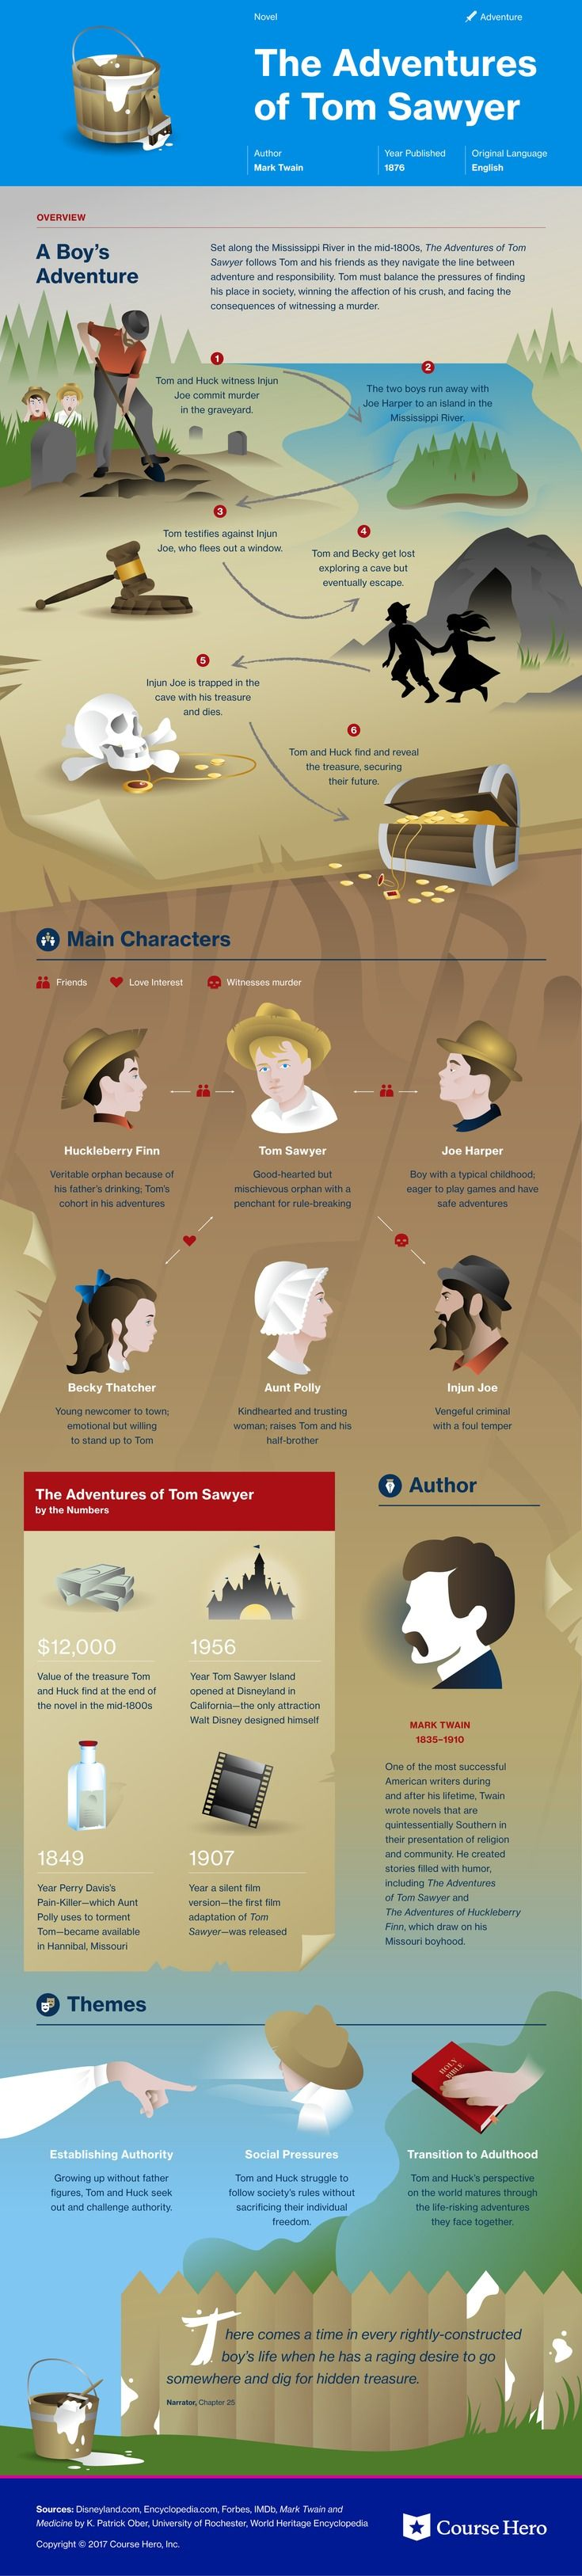 This @CourseHero infographic on The Adventures of Tom Sawyer is both visually stunning and informative!